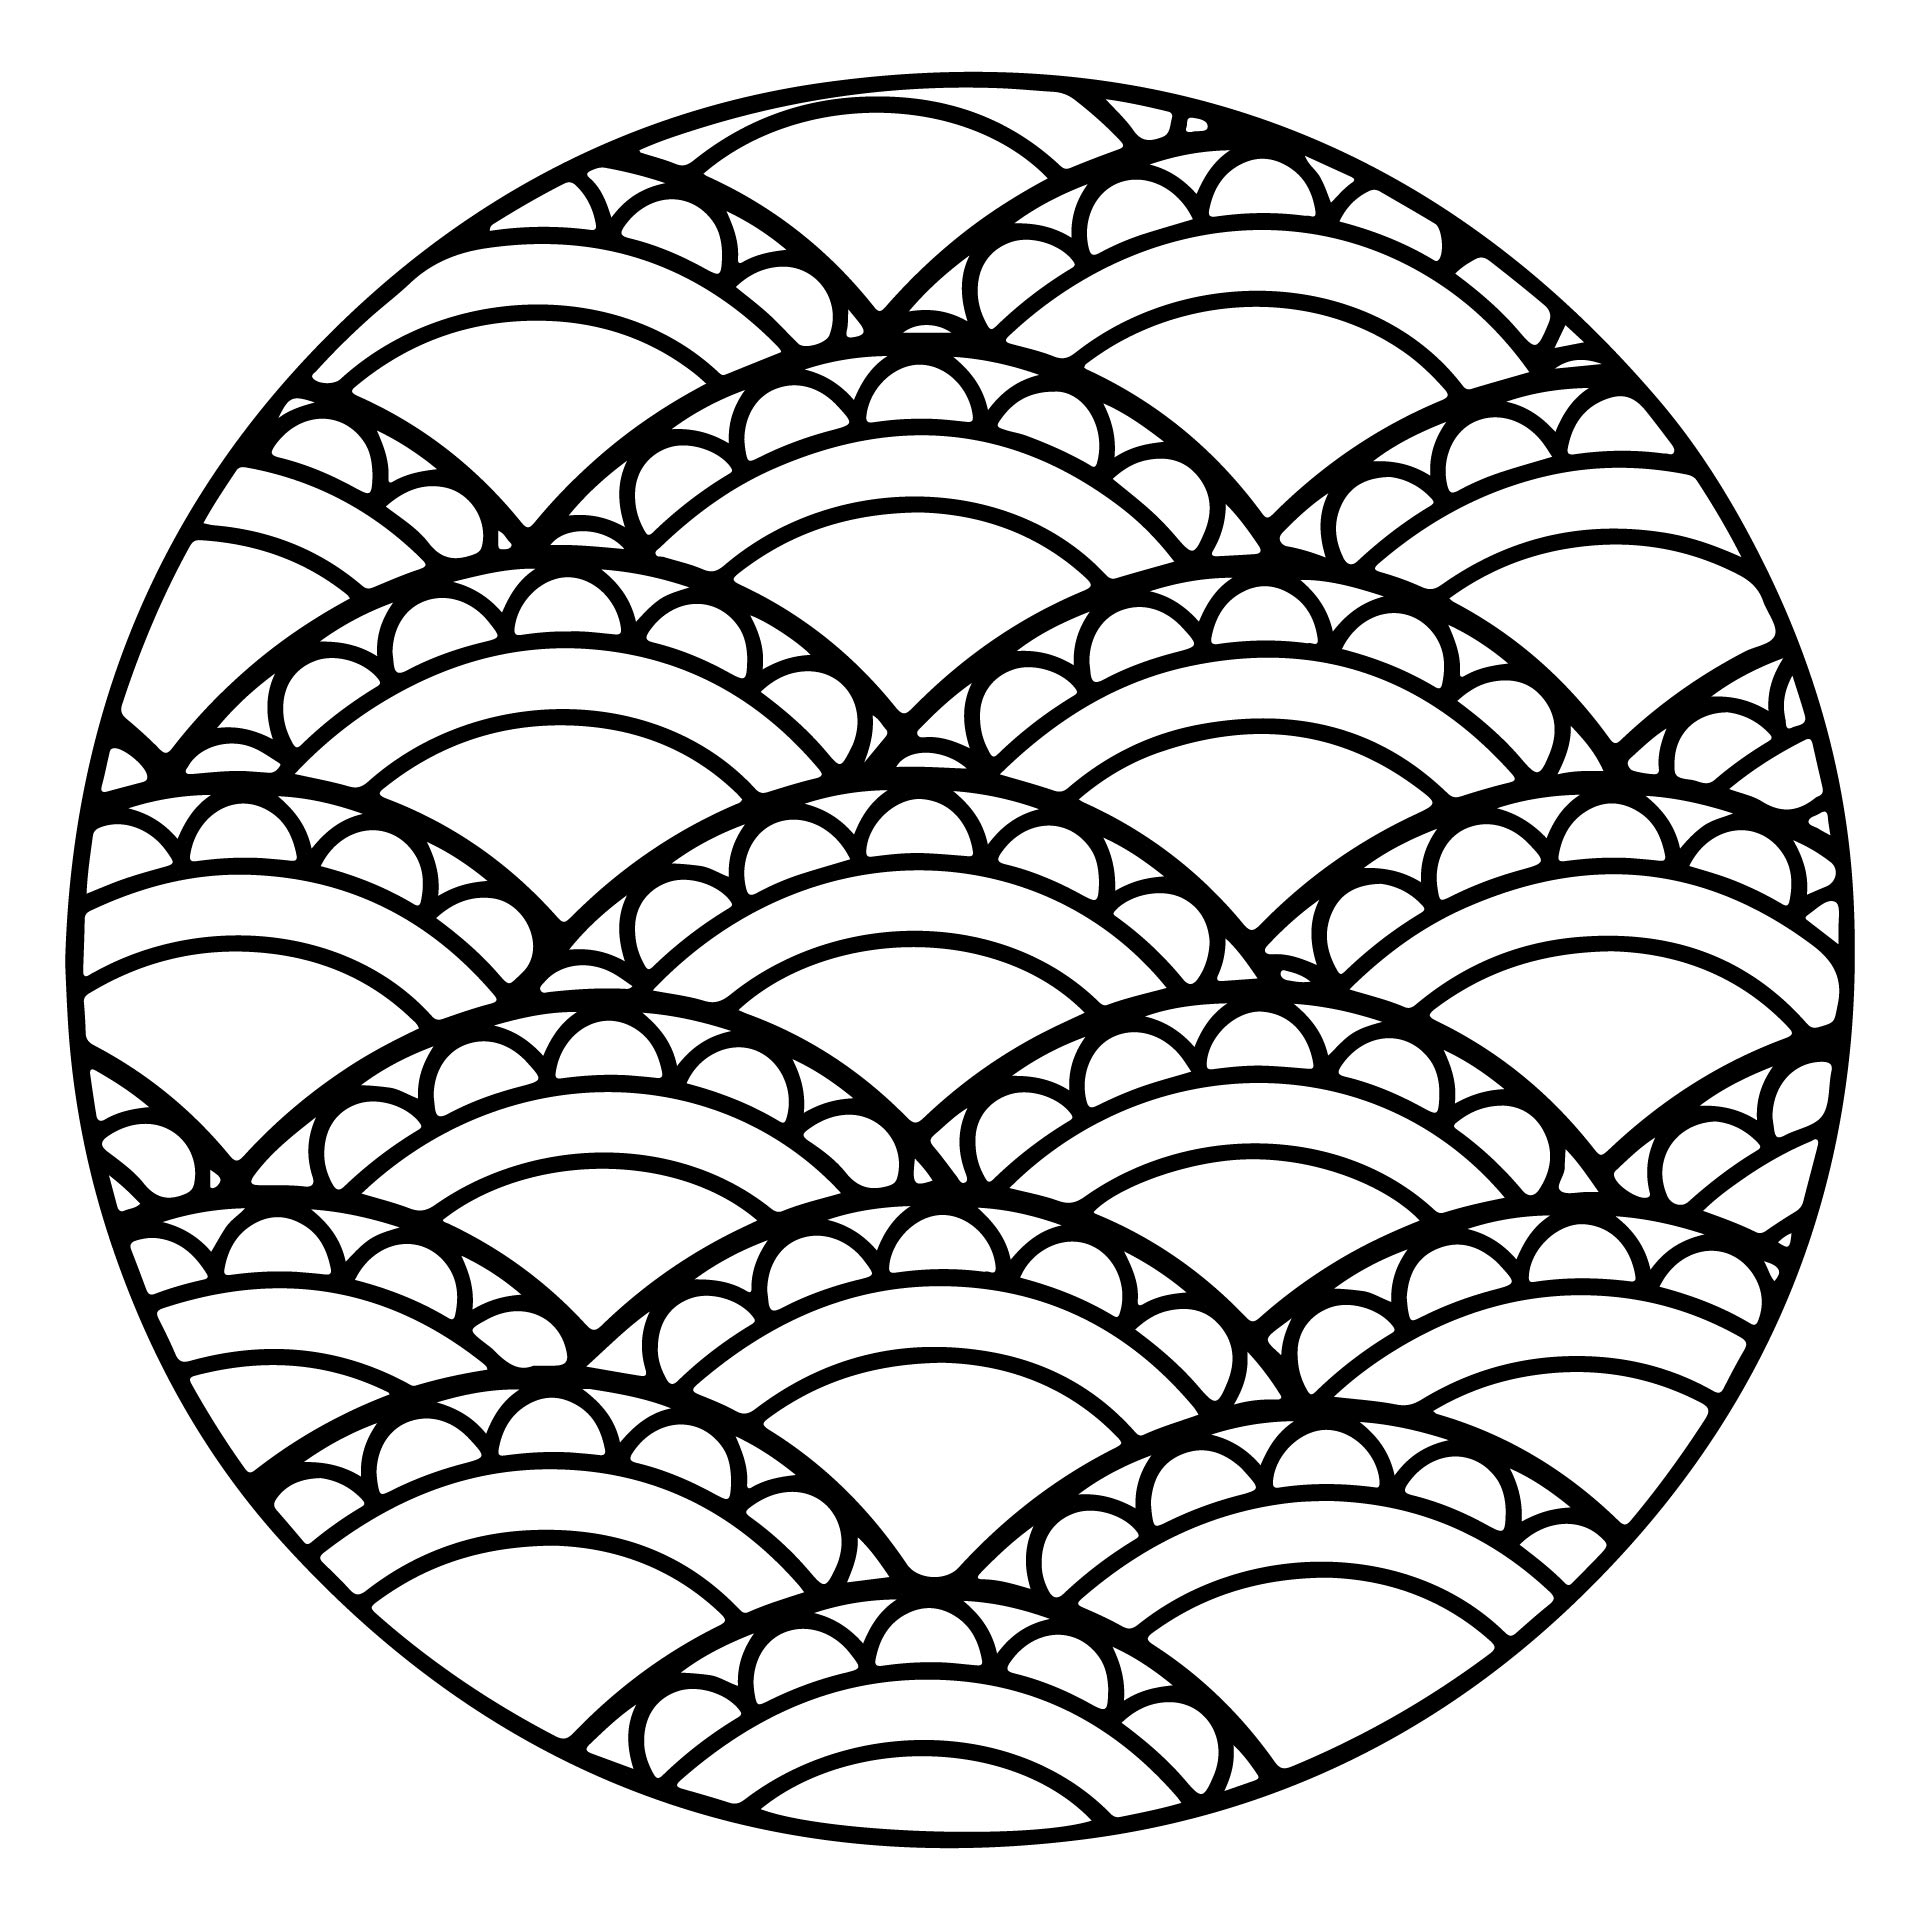 Zentangle Patterns Printable Coloring Pages